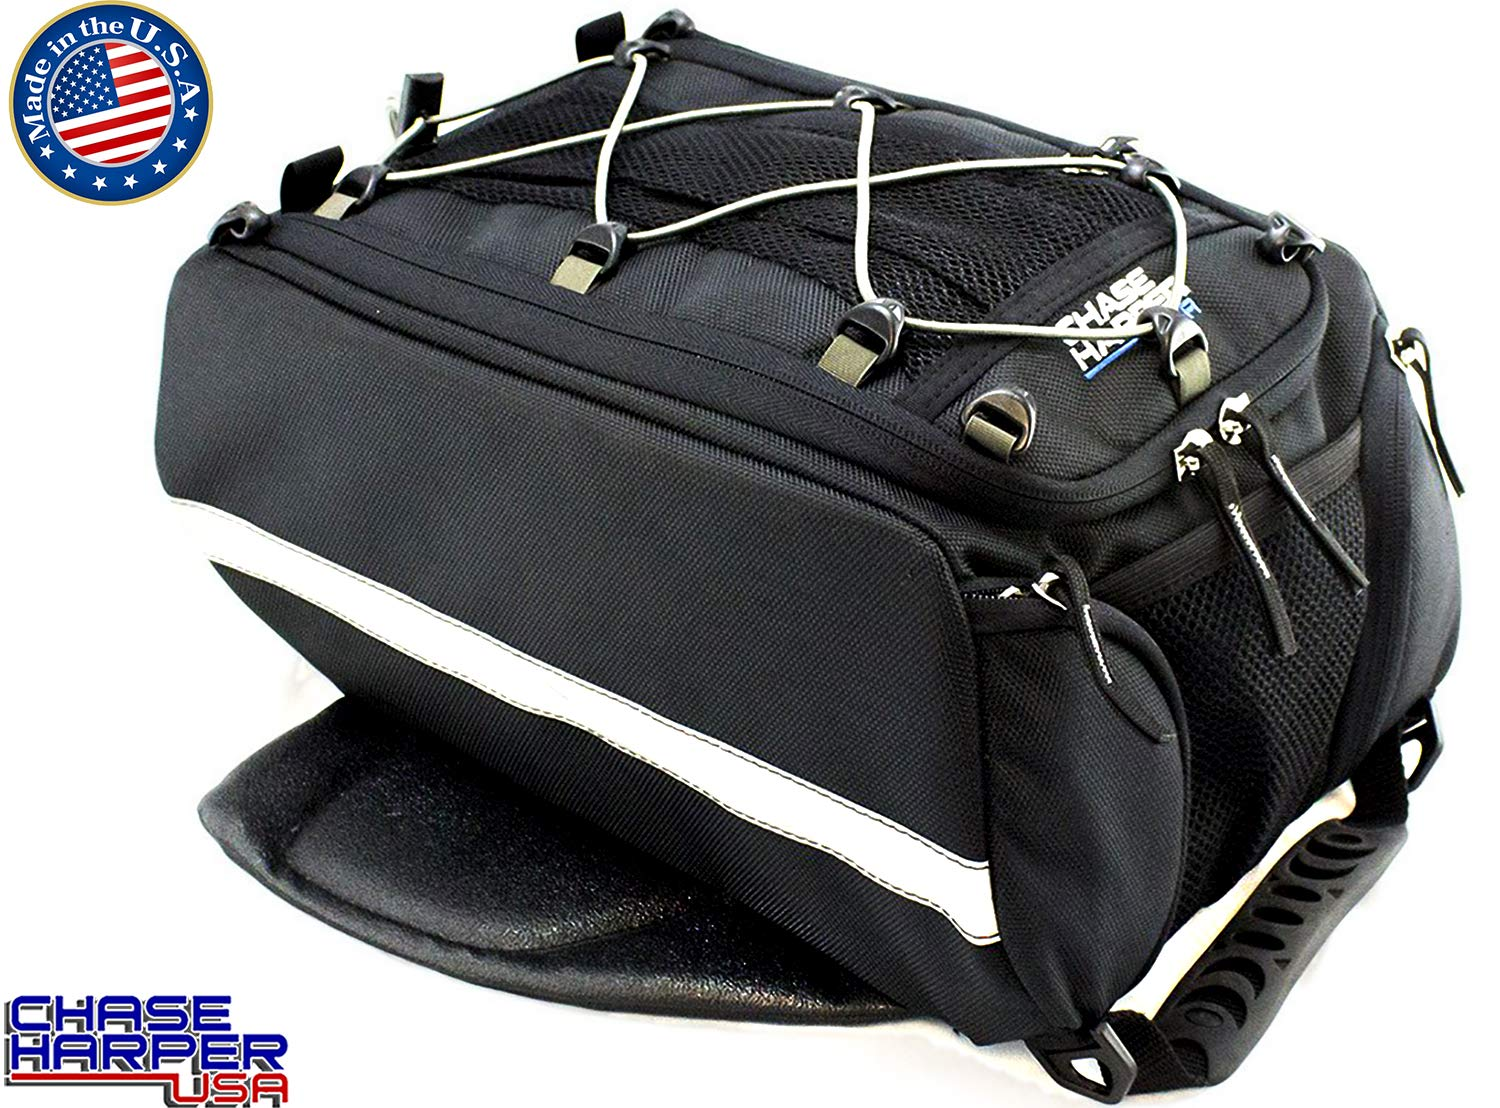 Chase HarperUSA1650 Magnetic Tank Bag - Water-Resistant, Tear-Resistant, Industrial Grade Ballistic Nylon with Anti-Scratch Rubberized Polyester Bottom, Strong Neodymium Magnets, 11.5''L x 10''W x 7''H